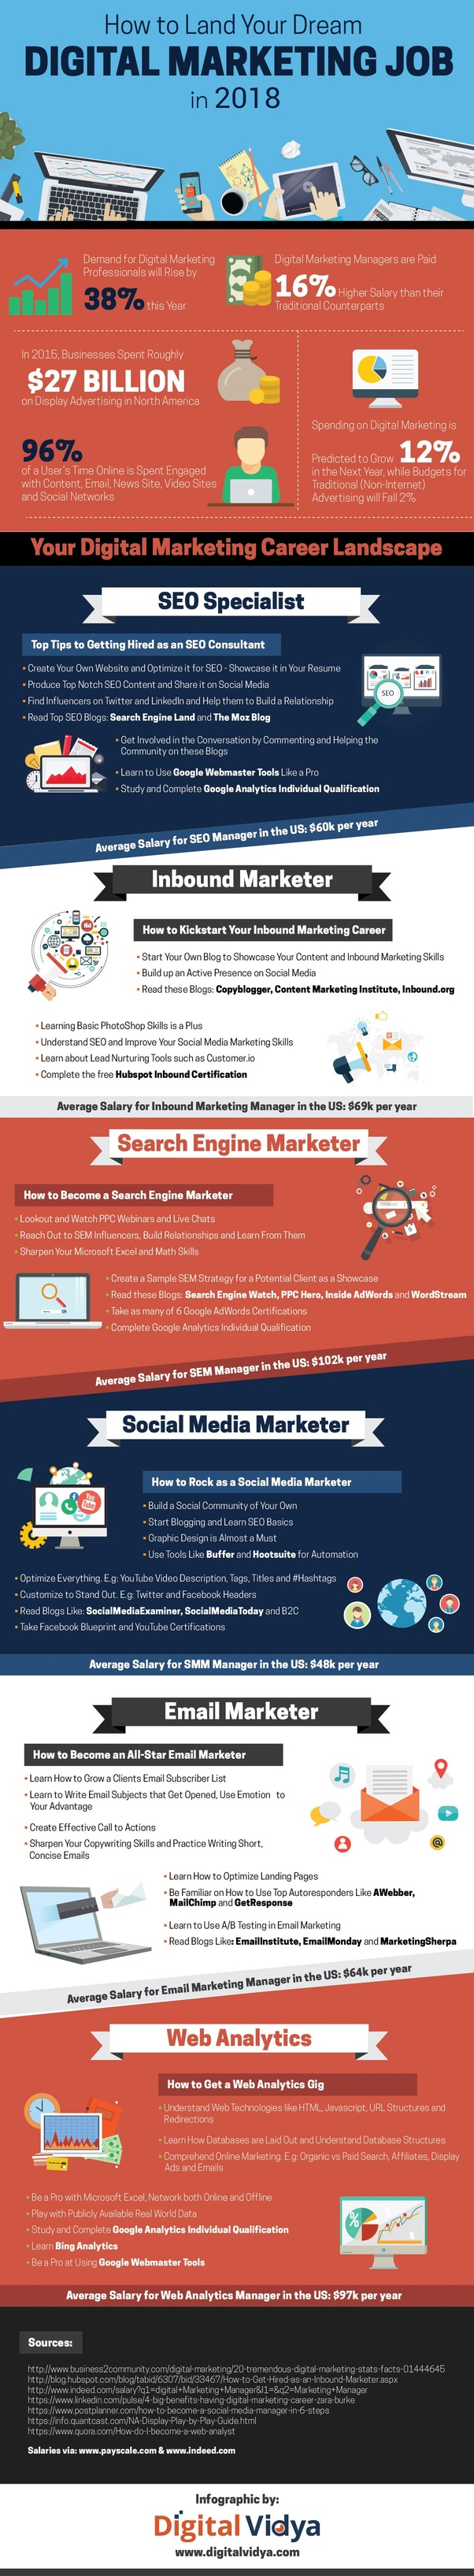 How good is a career in digital marketing quora you might be wondering what kind of skills one should have to be successful in digital marketing in addition to technical skills listed above fandeluxe